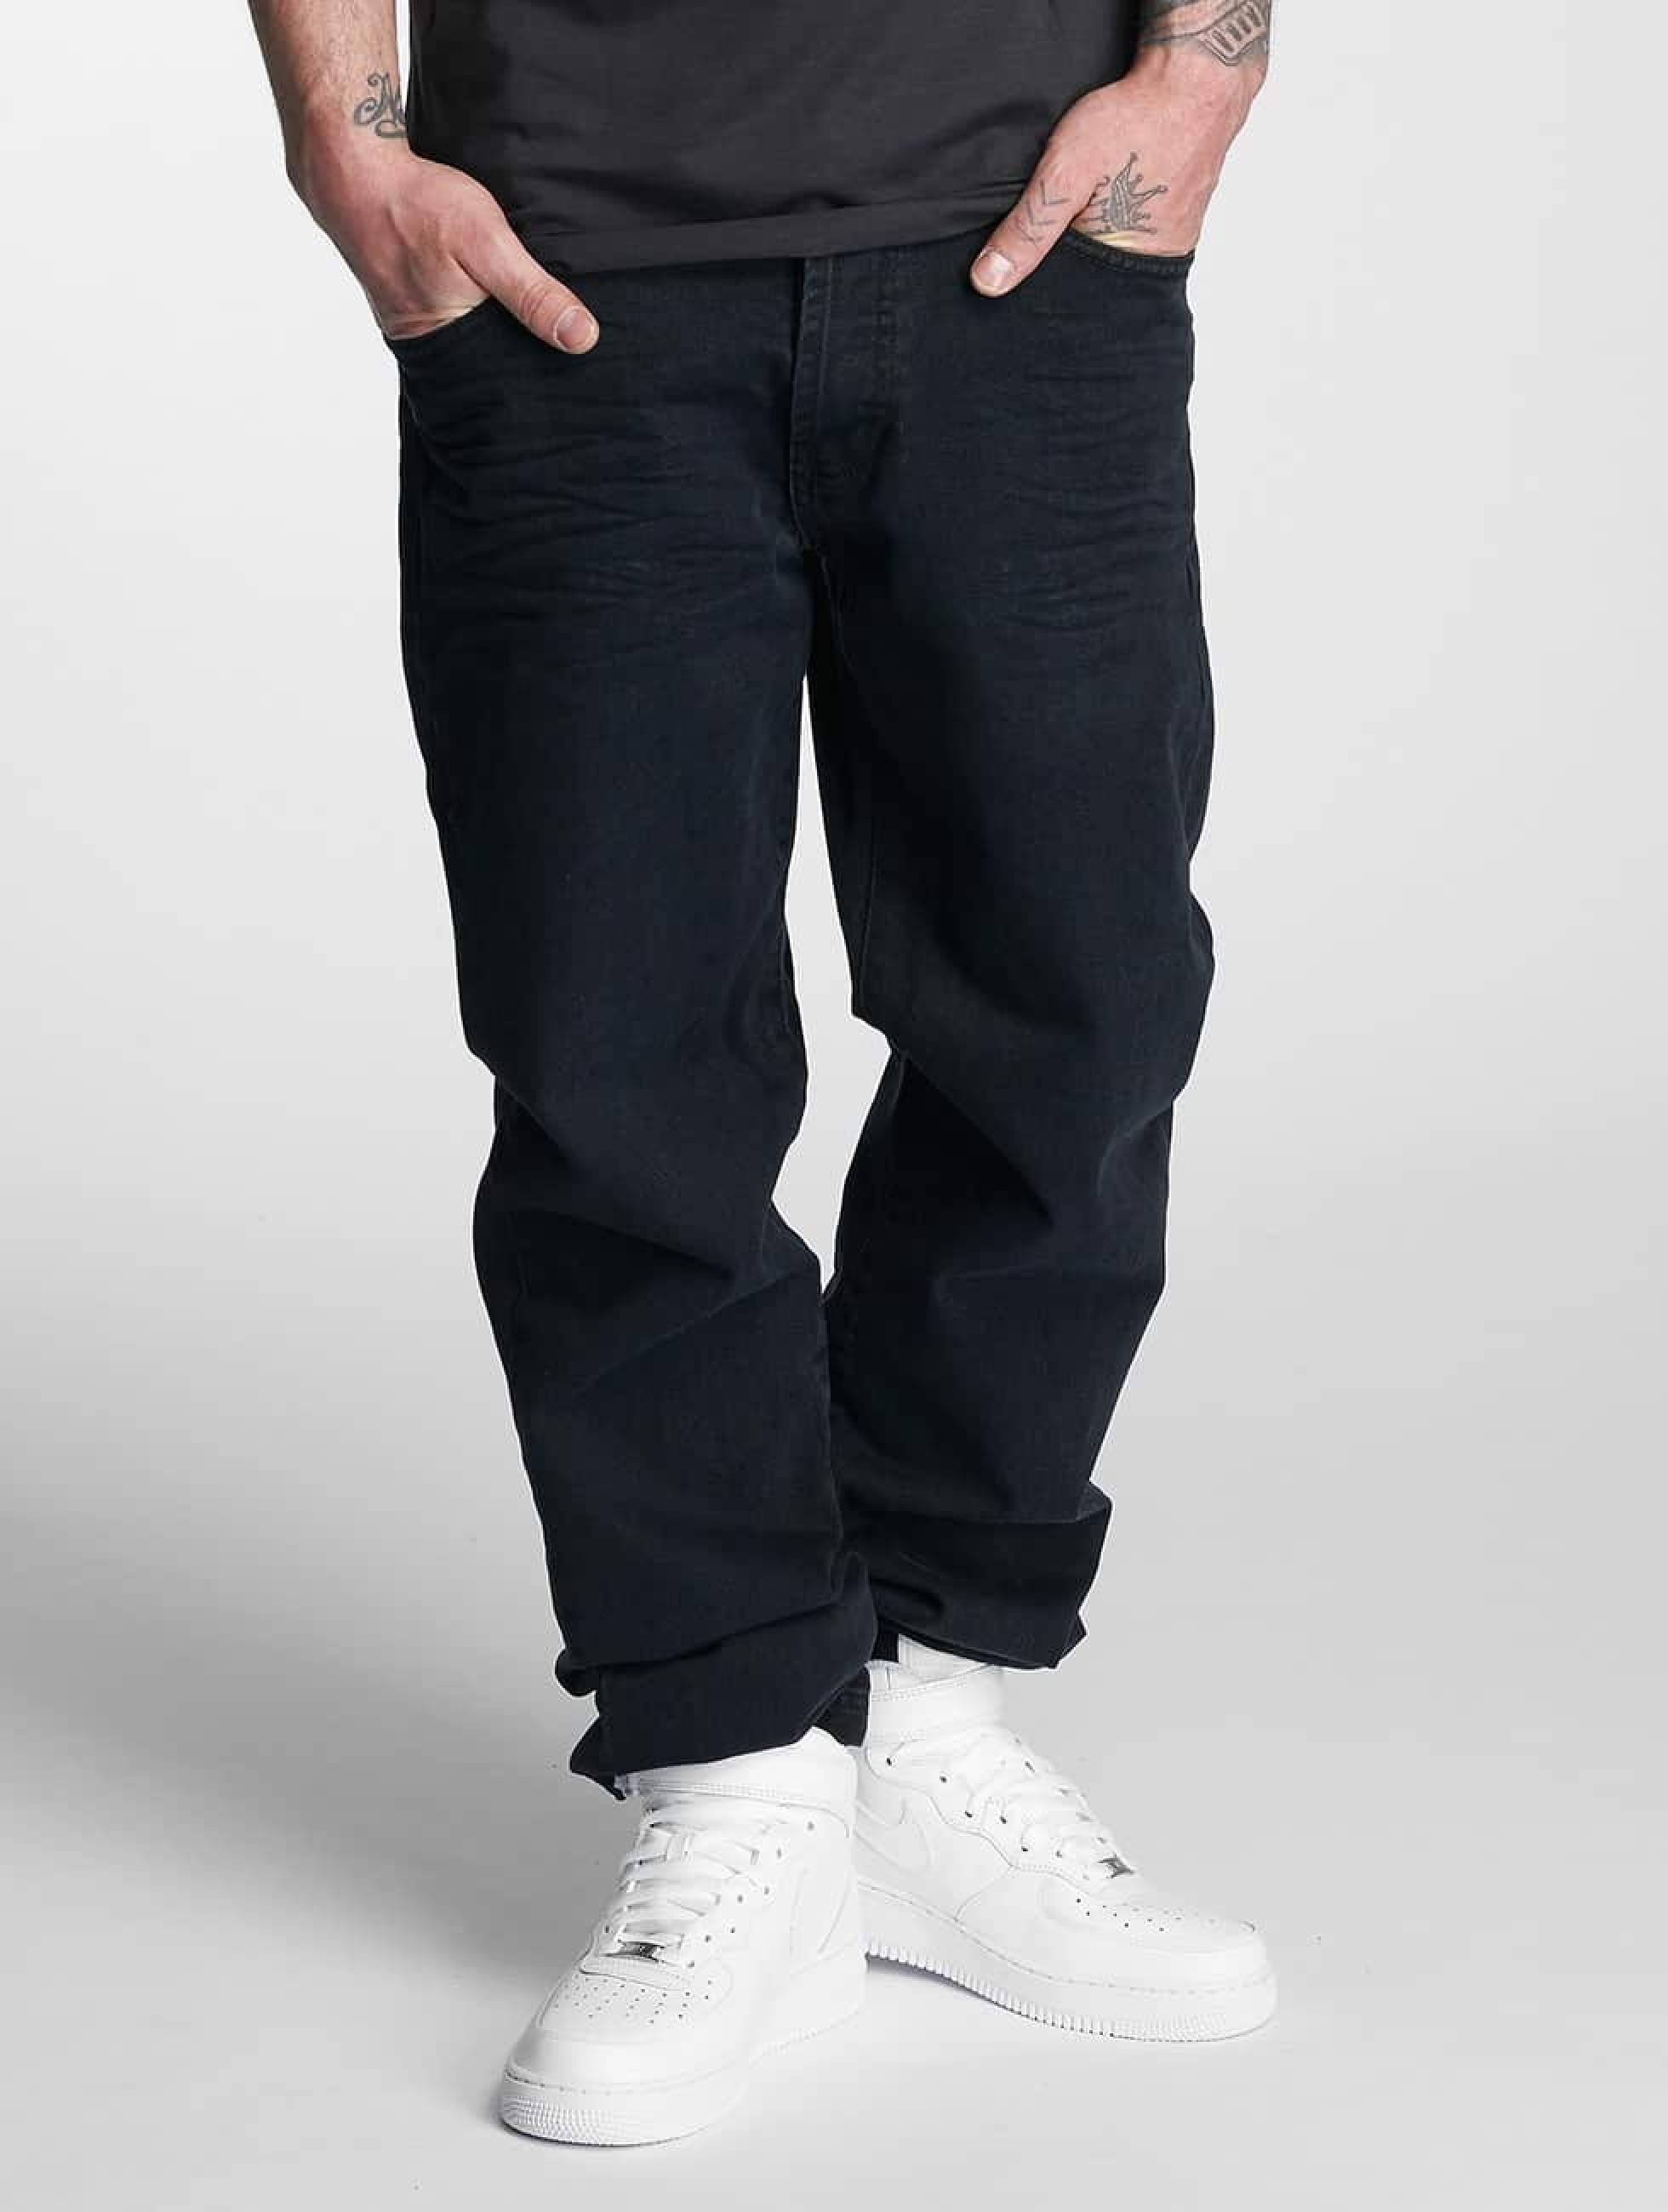 Thug Life / Loose Fit Jeans Carrot in black W 32 L 34